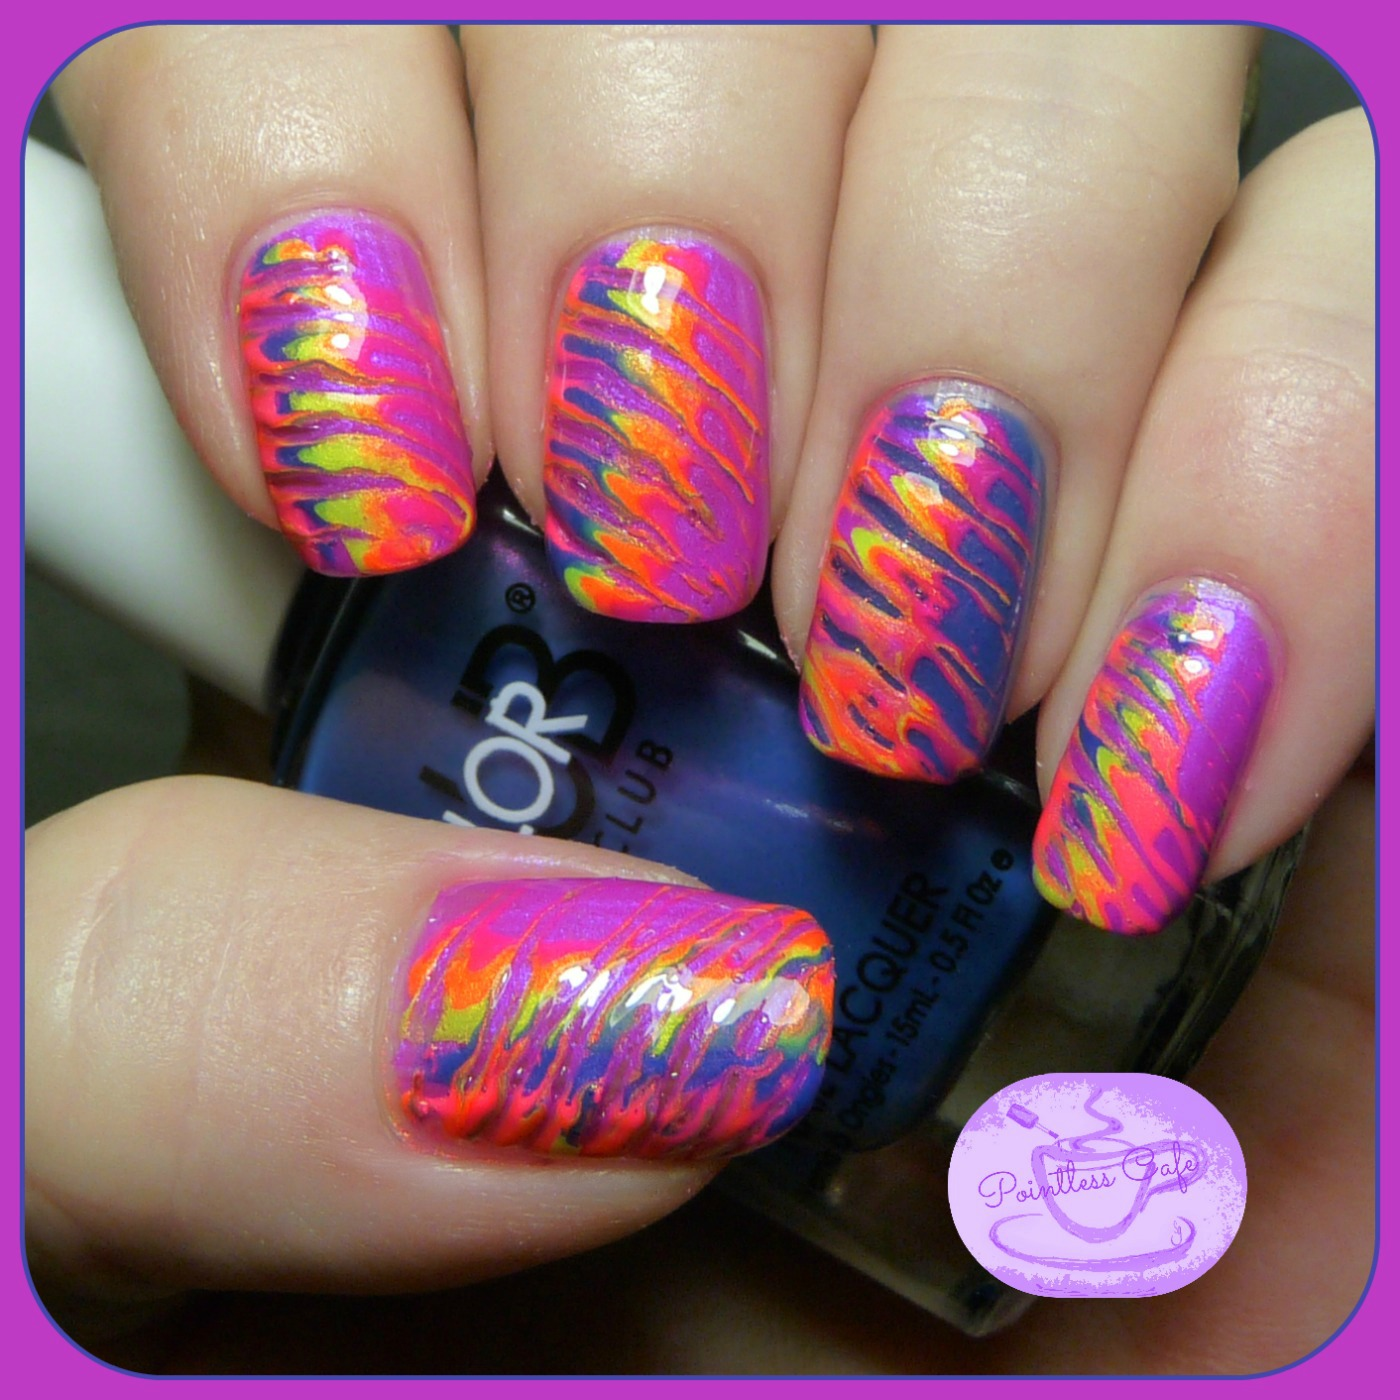 Color club poptastic nail art summer 2014 collection pointless neon toothpick marble nail art prinsesfo Gallery